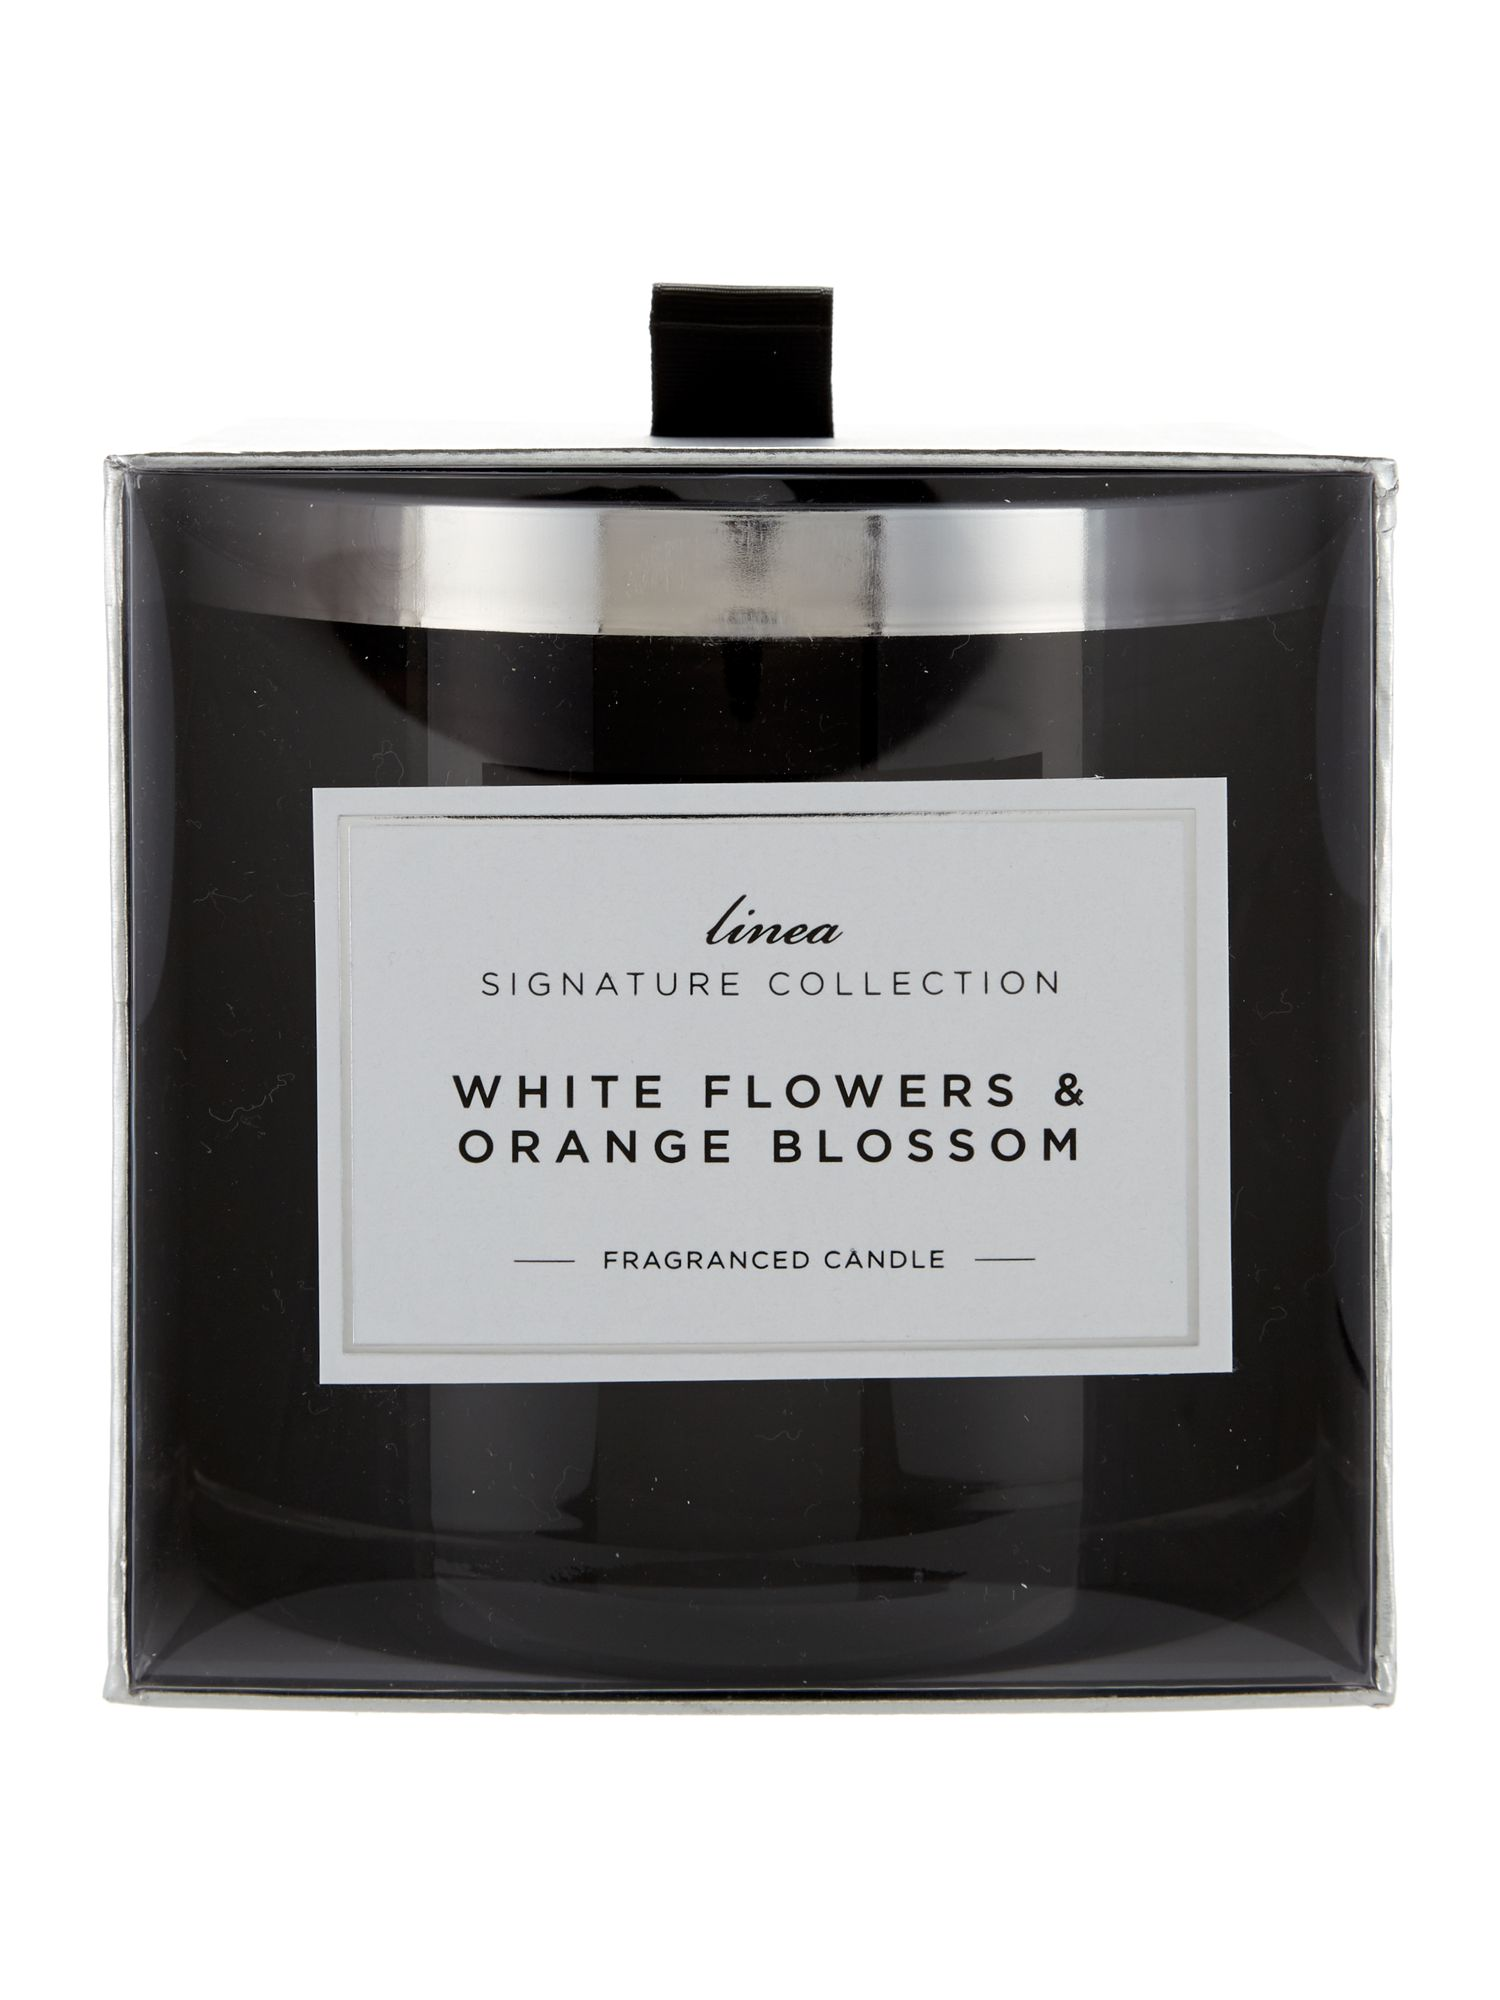 White flowers & orange blossom large candle